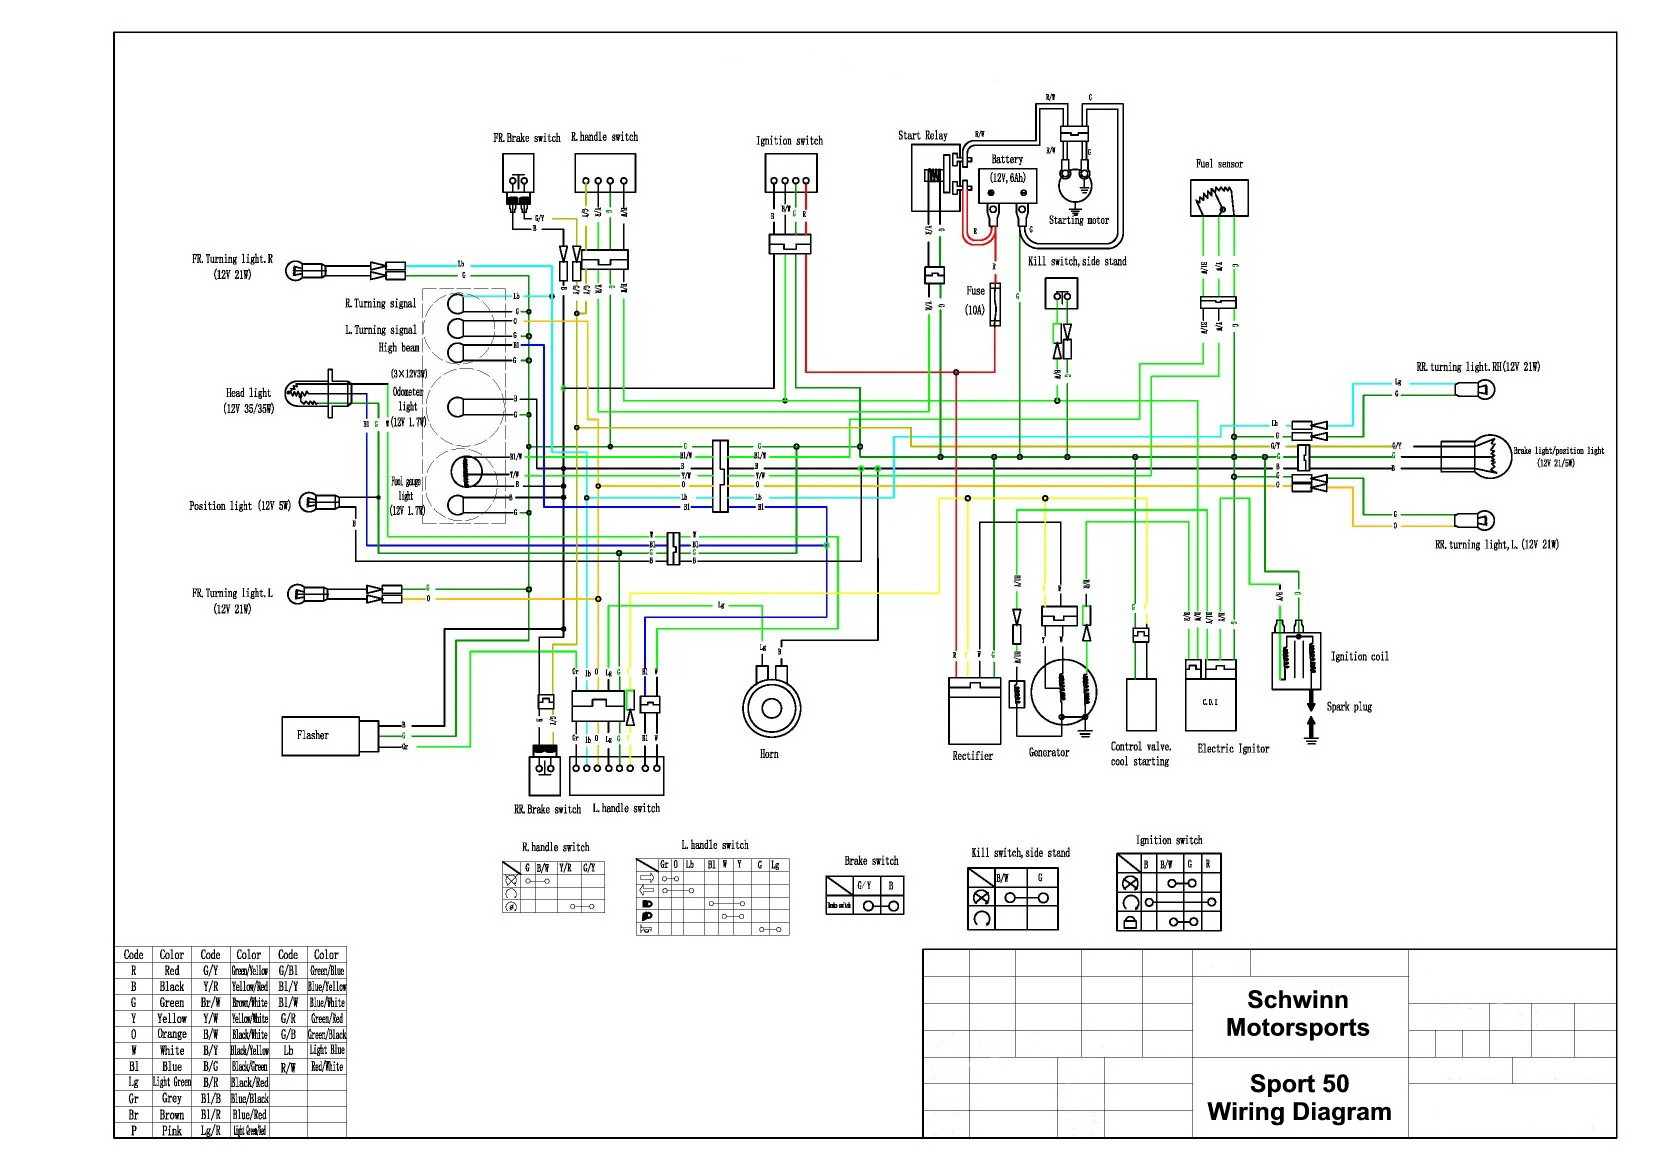 mobility scooter wiring diagram Download-Victory Trailer Wiring Diagram Best Pride Mobility Victory Scooter Wiring Diagram Wiring solutions 16-q